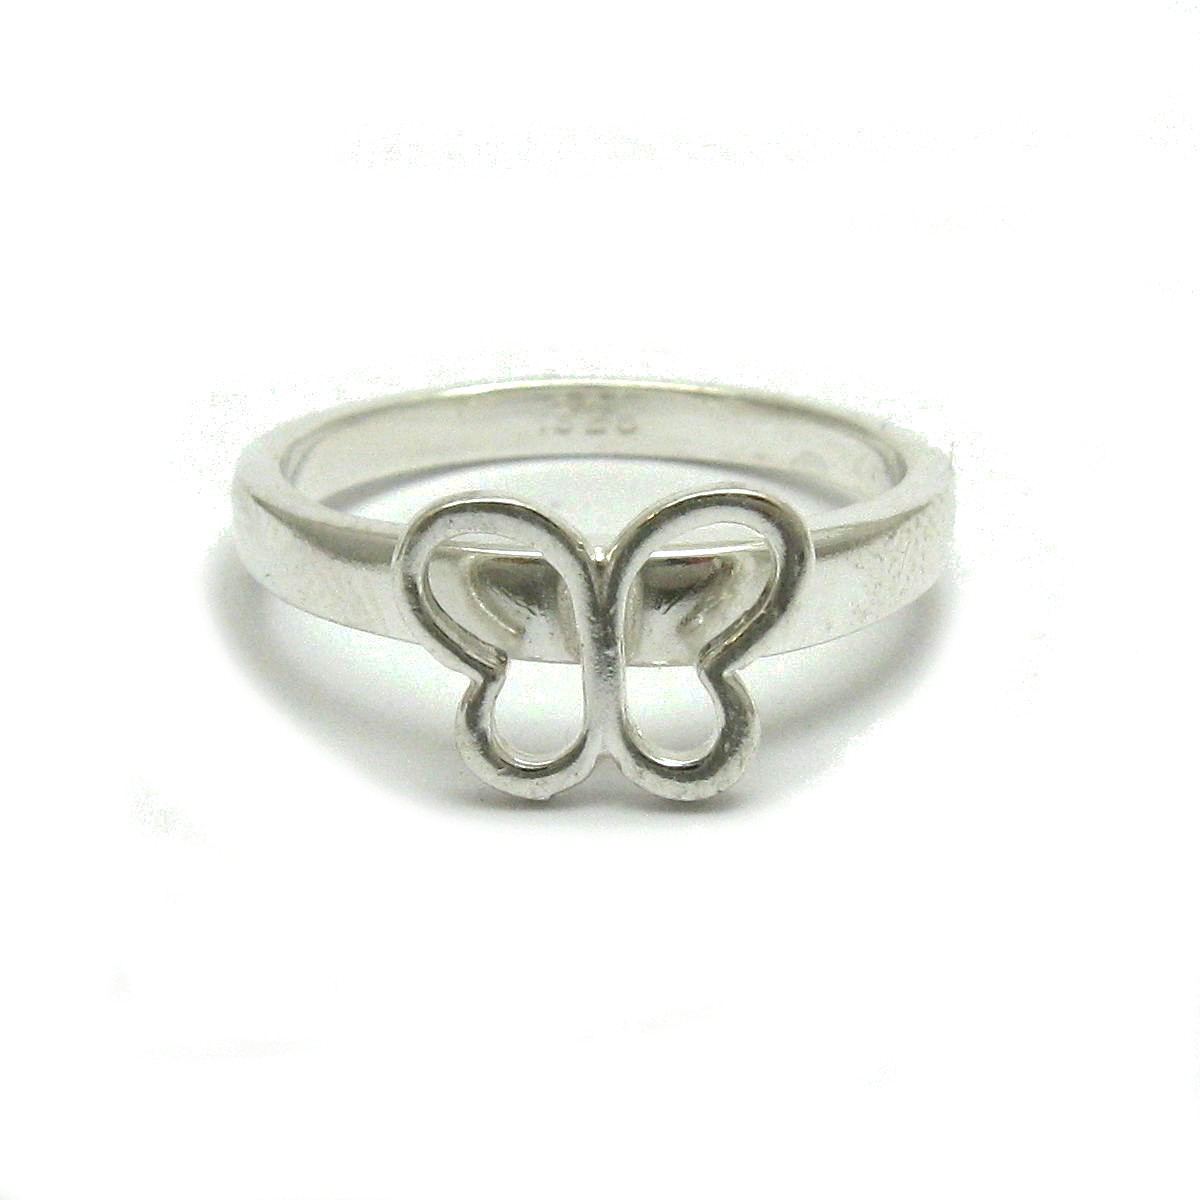 Silver ring - R001746